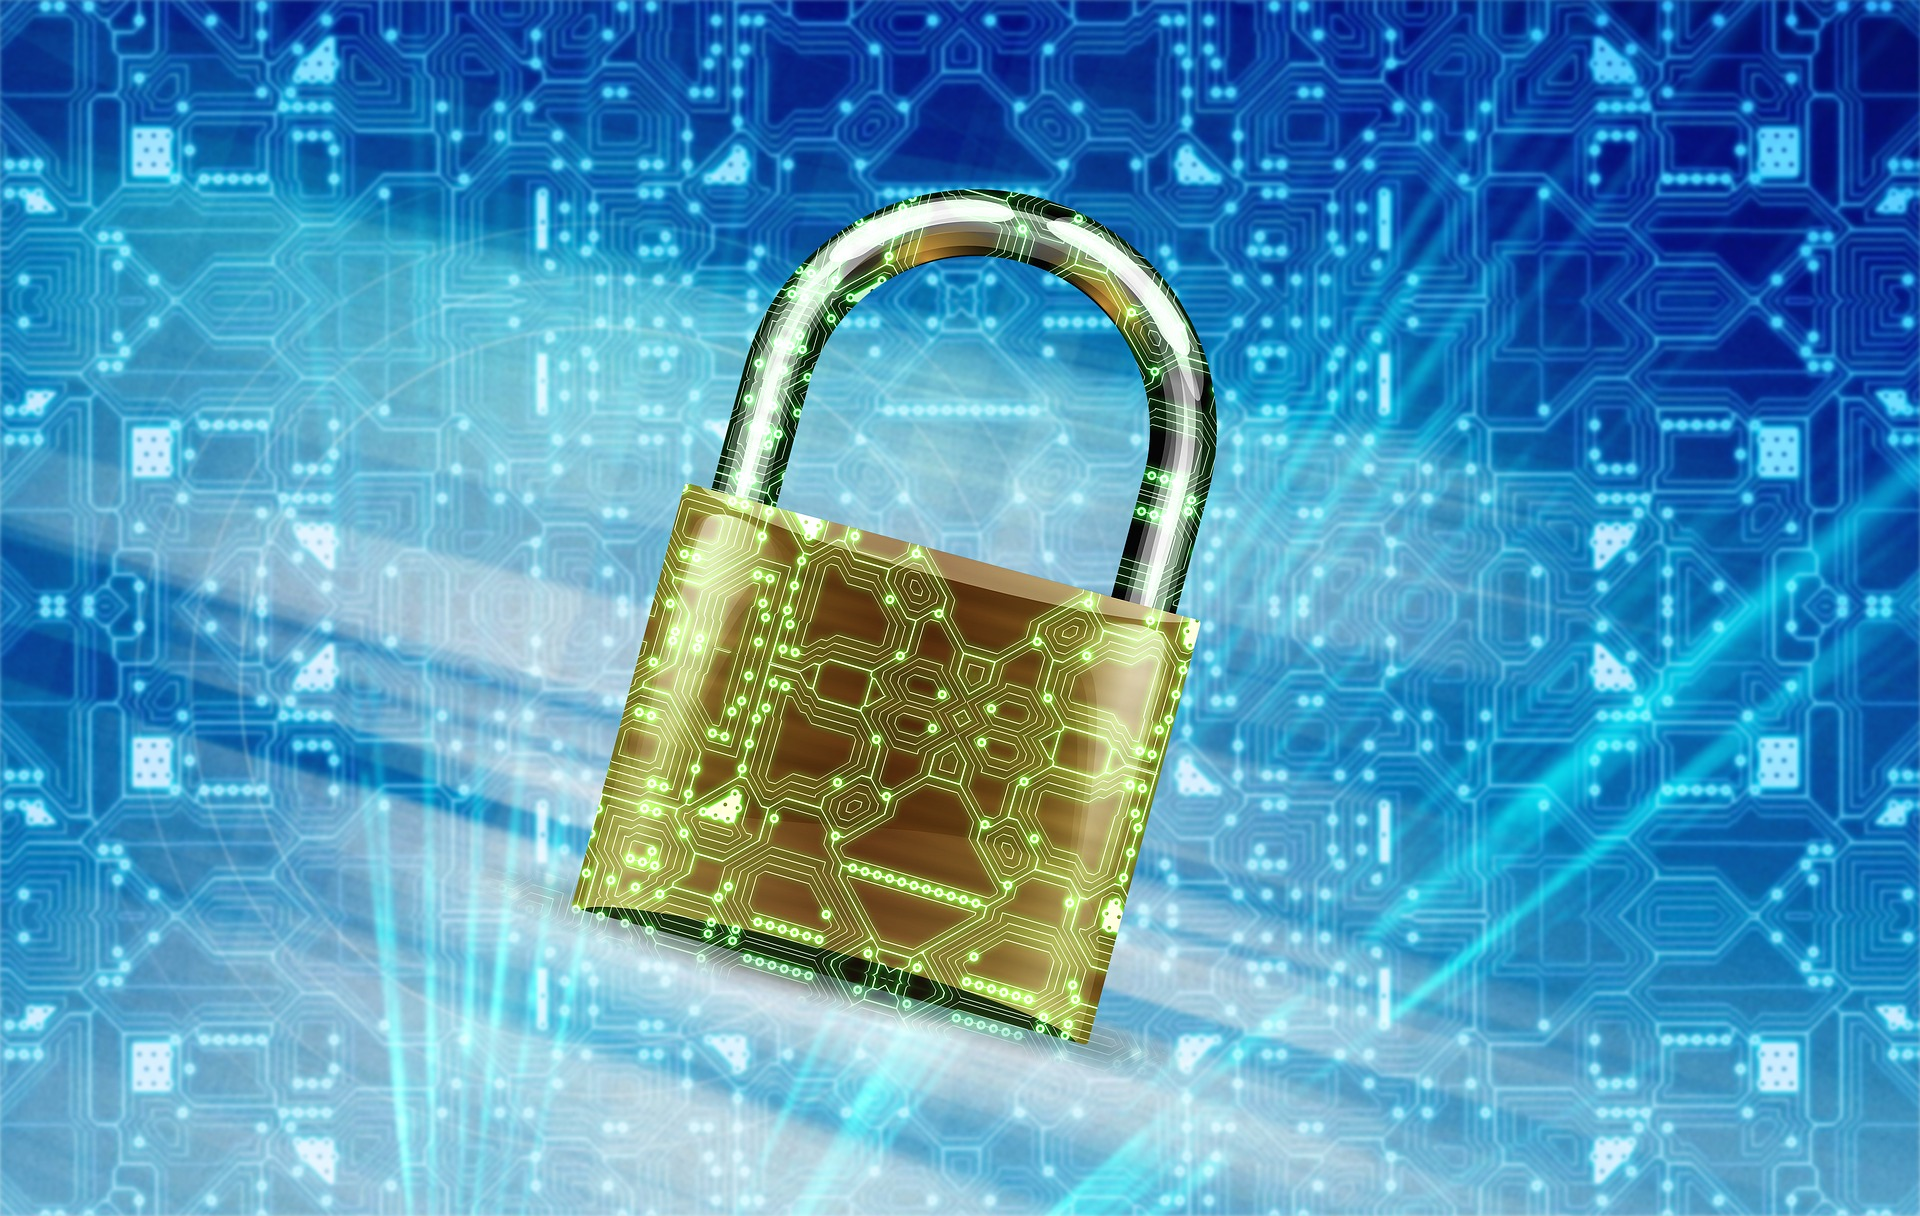 Viruses, Malwares and Protection of Systems and Web Assets - Image 1